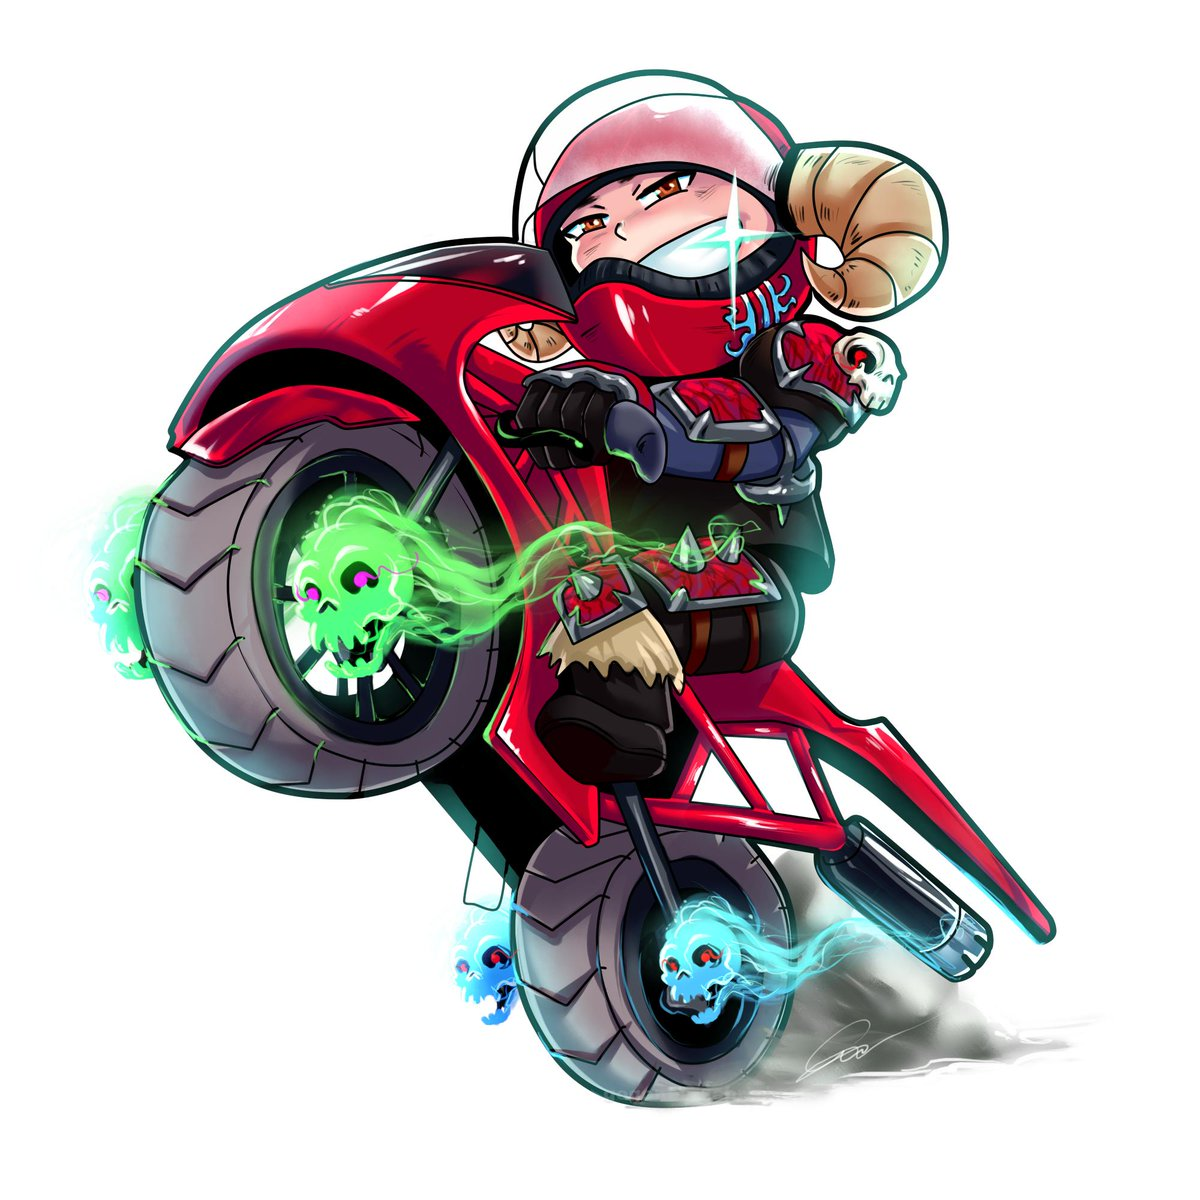 Top Supporter #Chibi gift for Dangero5 ( twitch - https://www.twitch.tv/dangero5  ) #wow #motorcycles #skulls #ghost #smile #art #gift